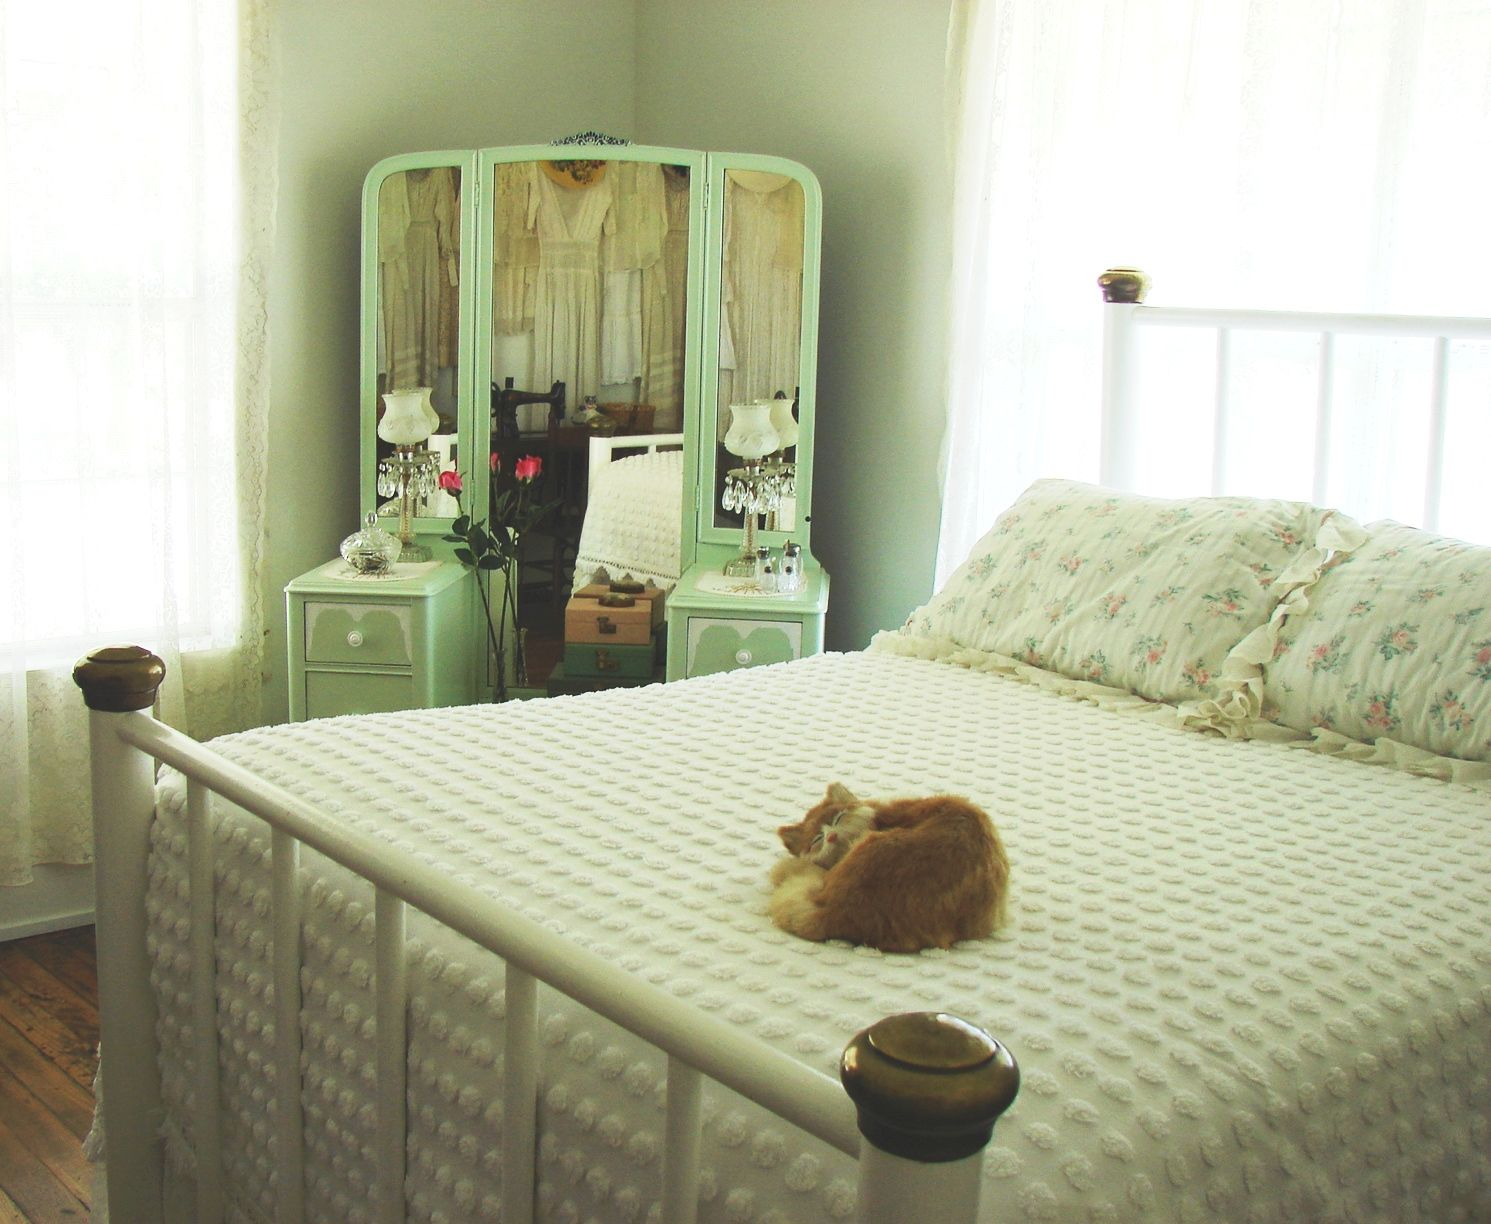 The Country Bedroom 1930s Style Fashion Decor Bedroom Chic Bedroom Decor Guest Bedroom Design